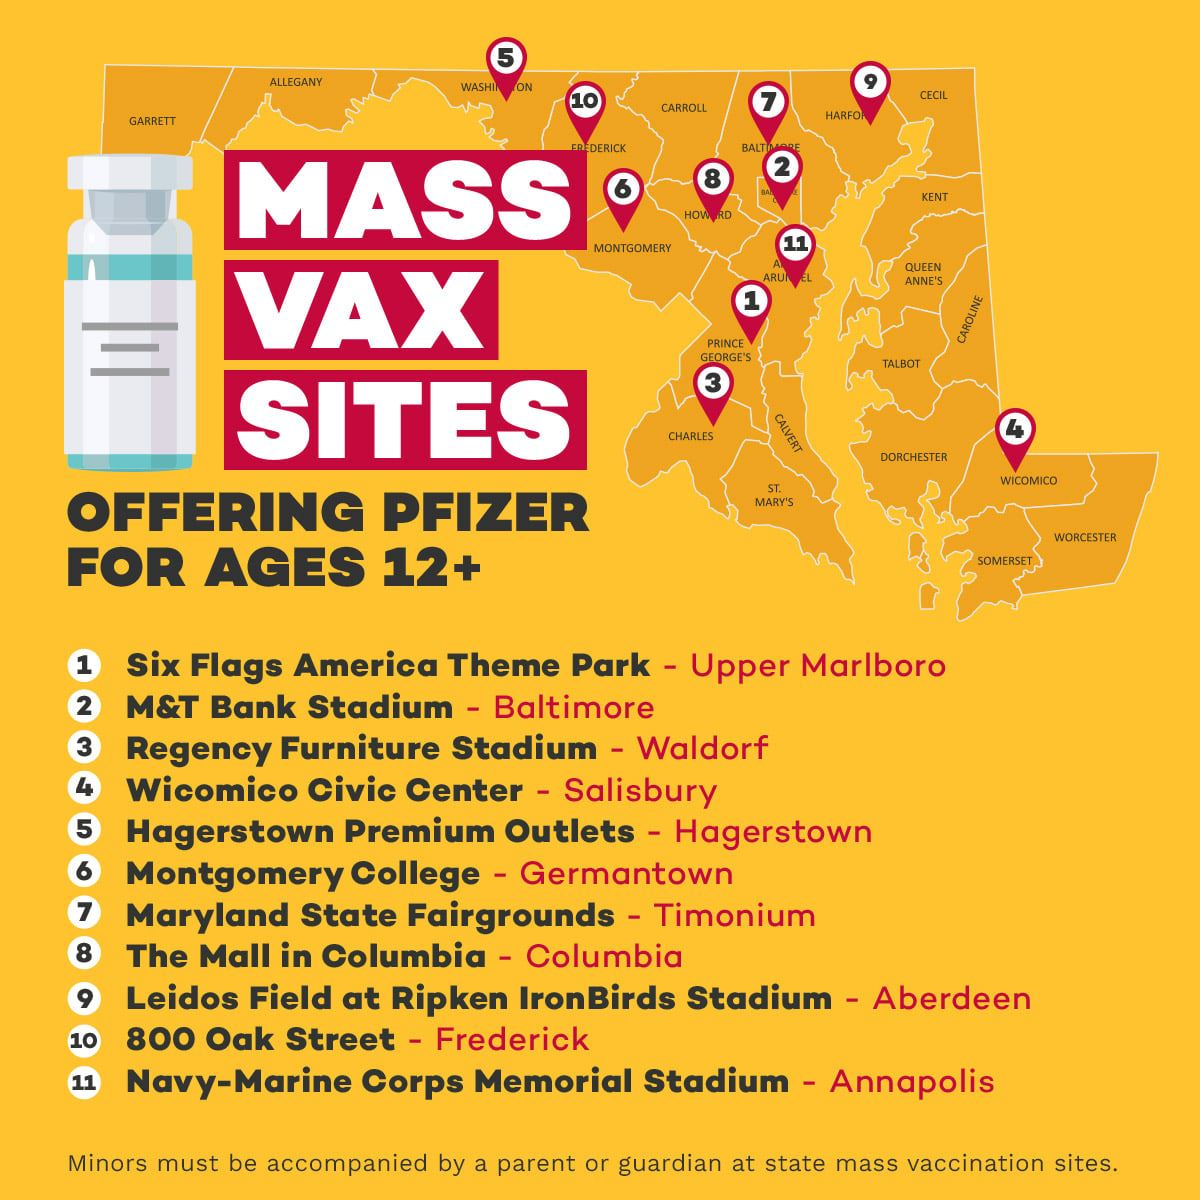 12 plus at Mass Vax